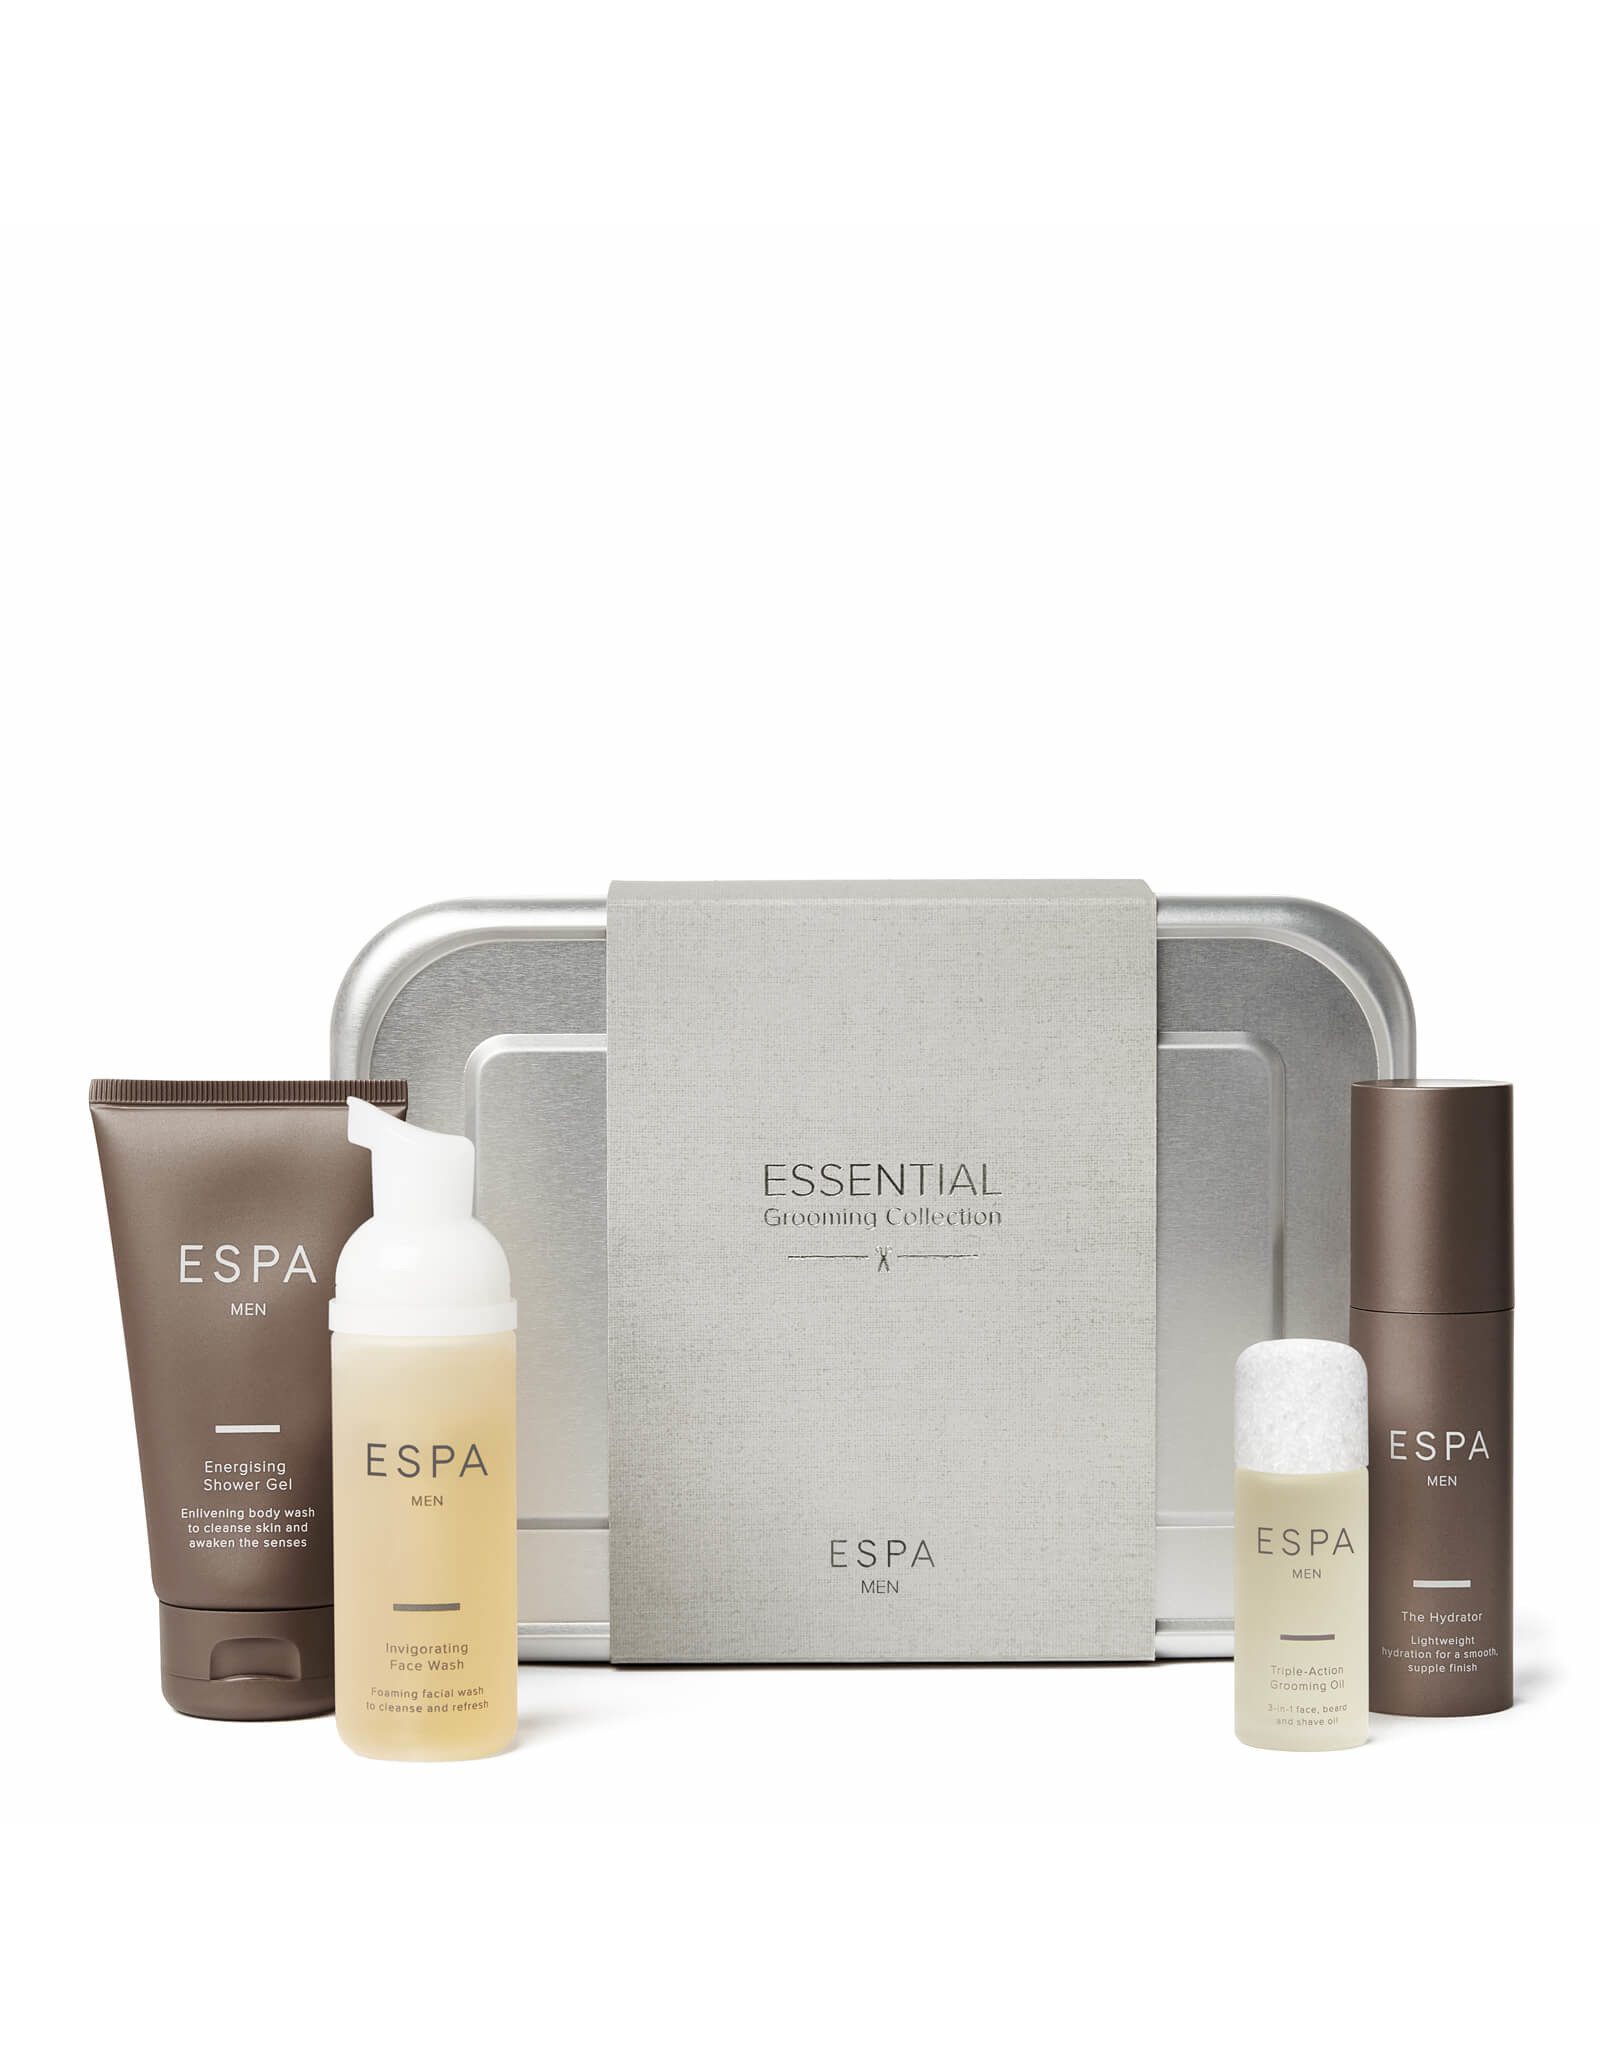 ESPA Men Essential Grooming Collection